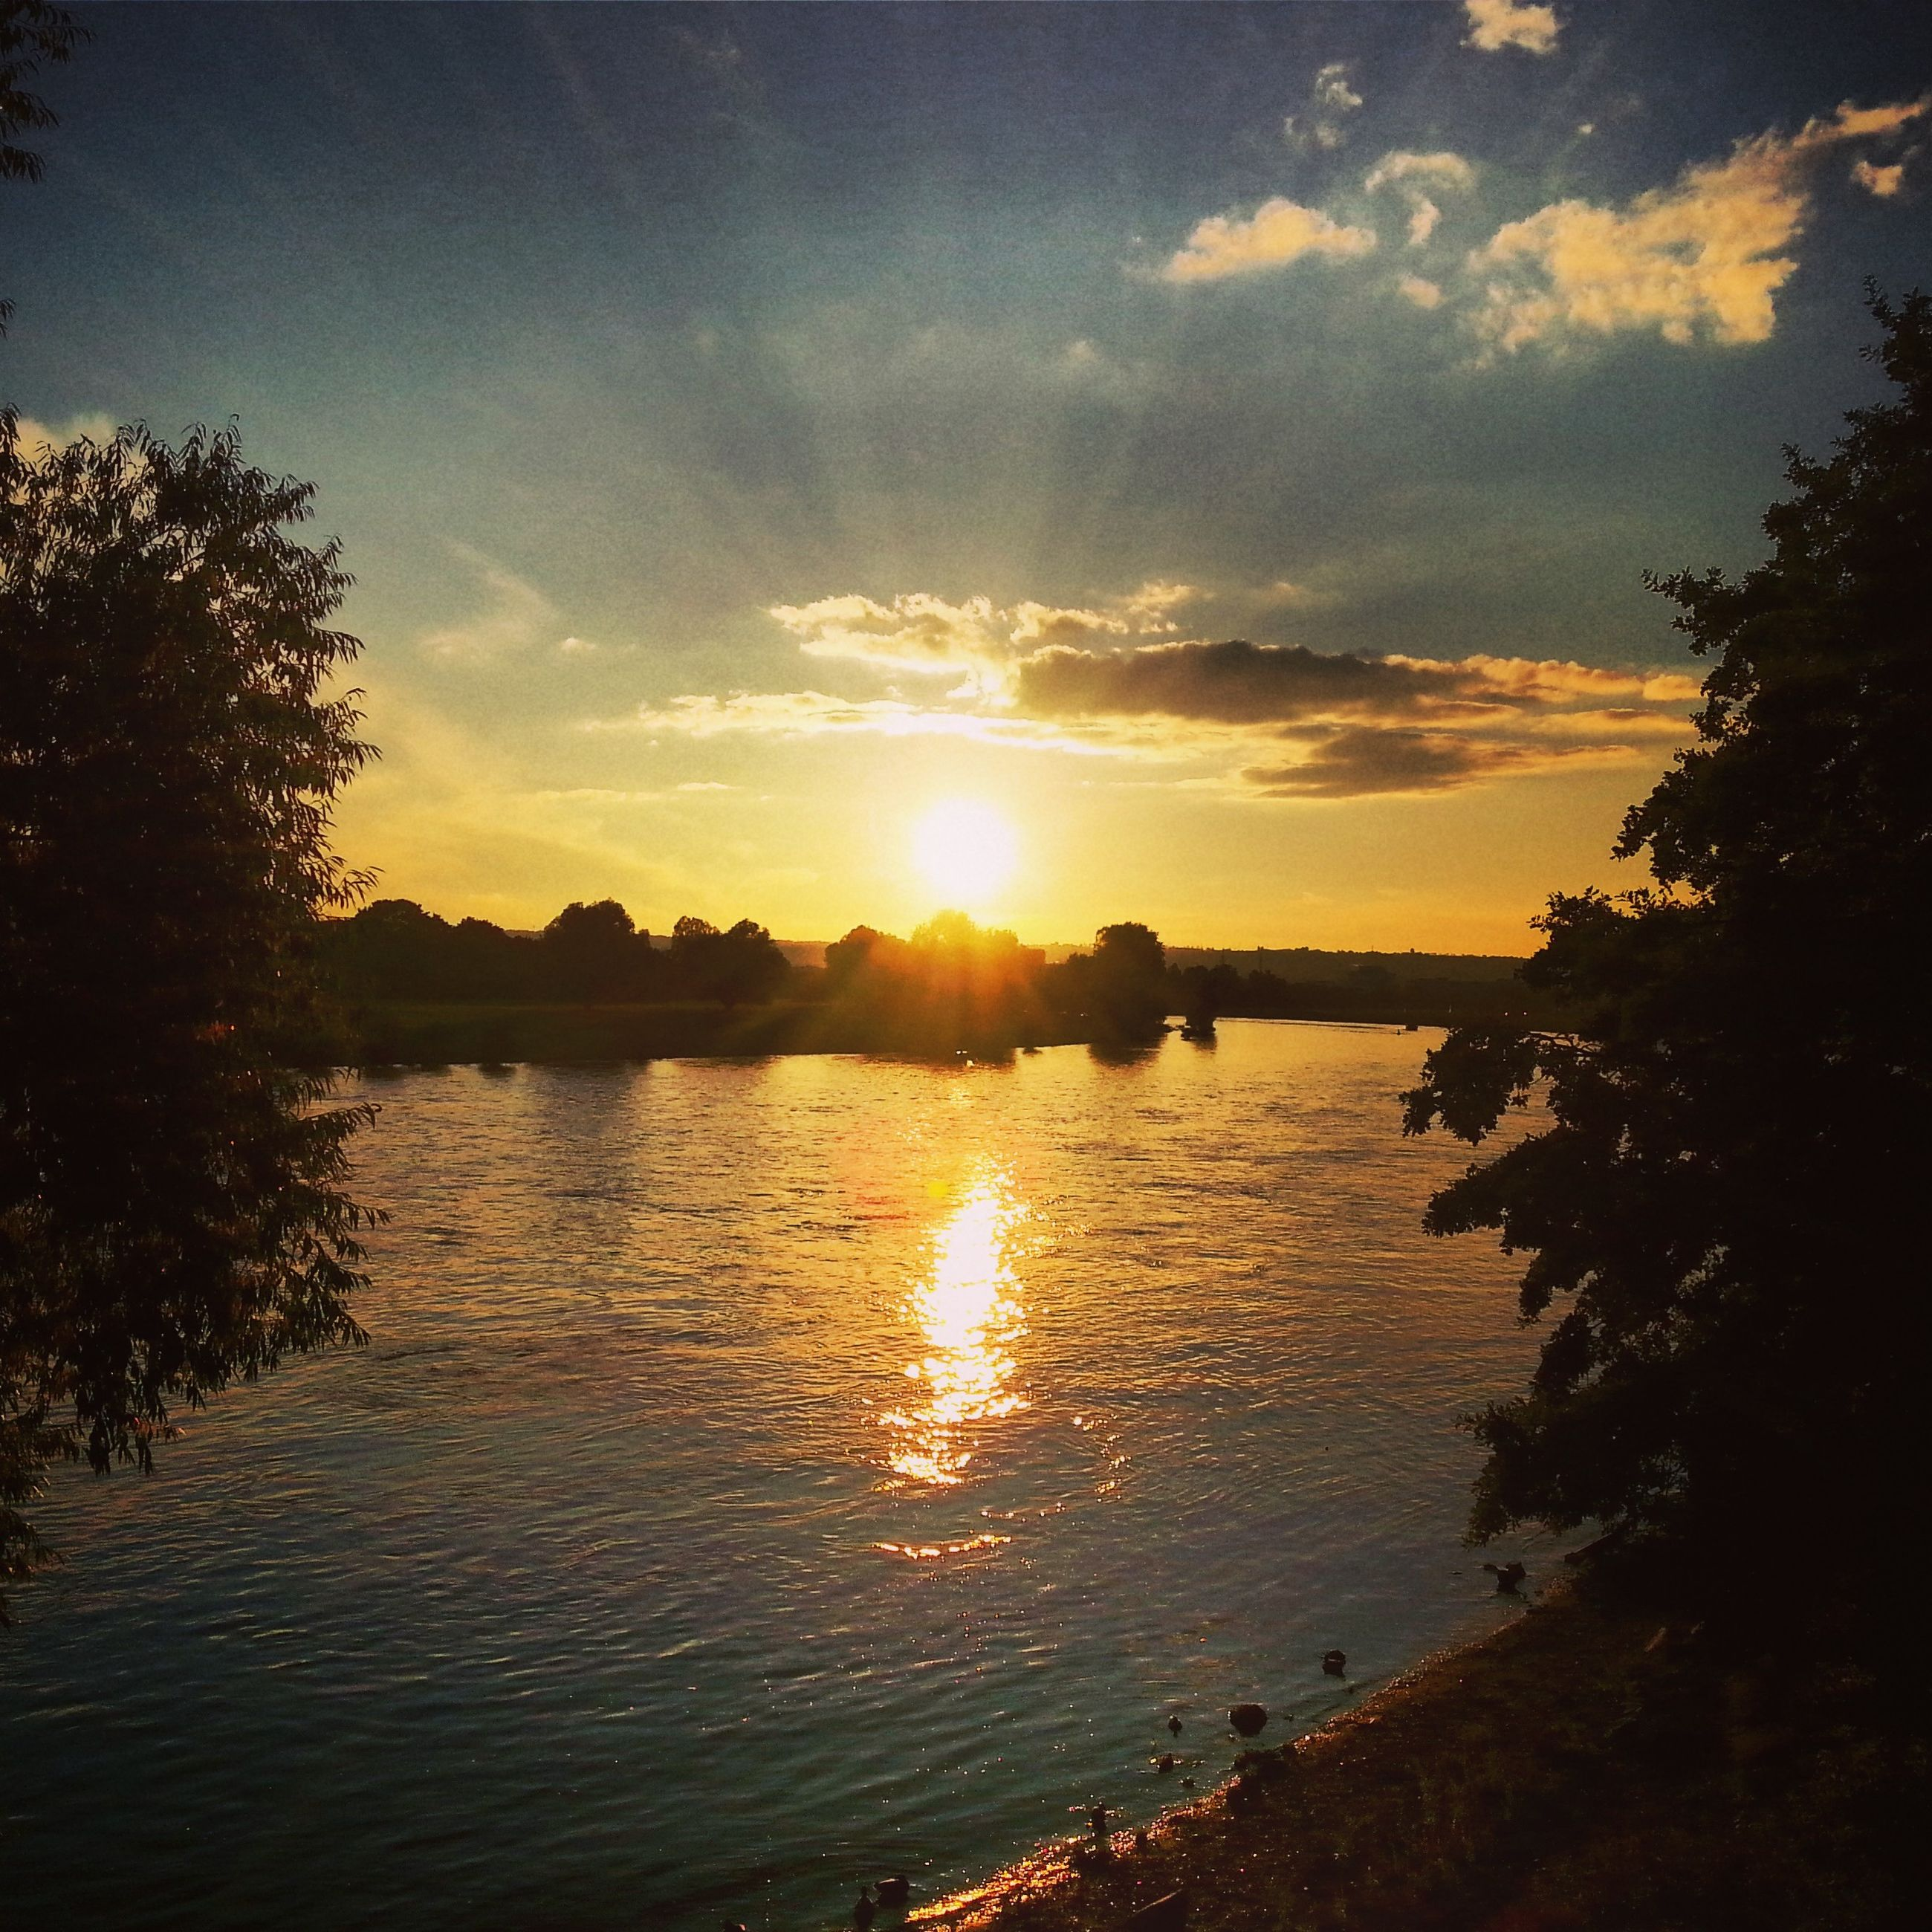 sunset, sun, water, sky, tranquil scene, scenics, tranquility, reflection, beauty in nature, silhouette, sunlight, nature, cloud - sky, lake, tree, idyllic, sunbeam, orange color, river, lens flare